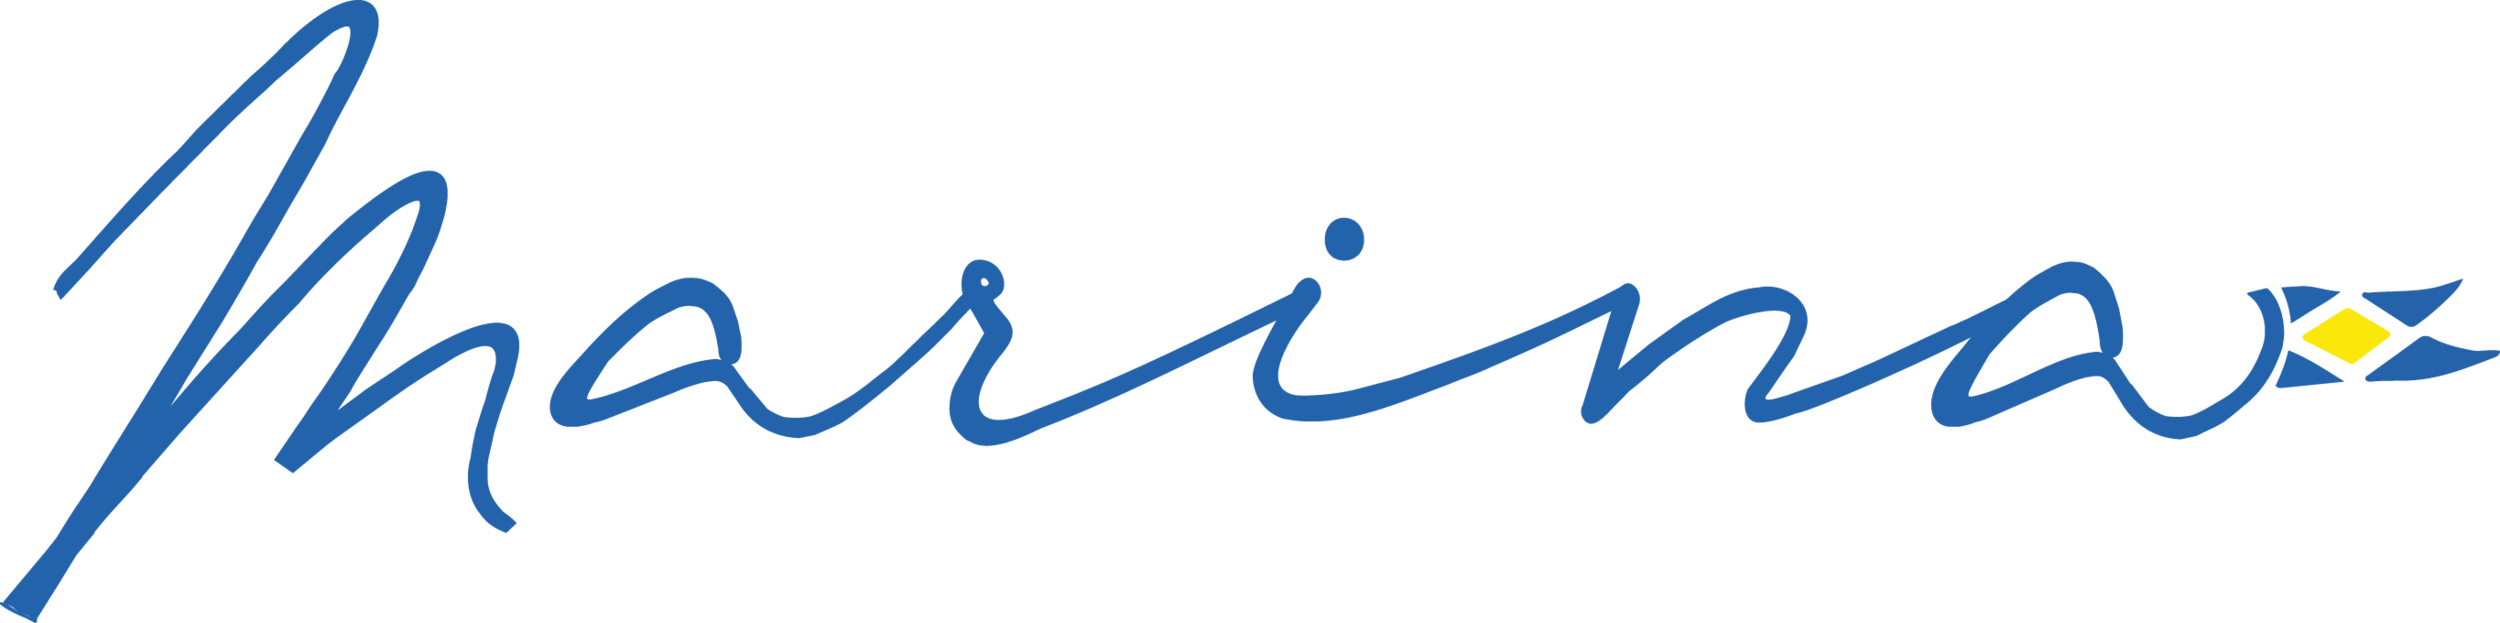 Final Marina Logo - Dark Blue.png